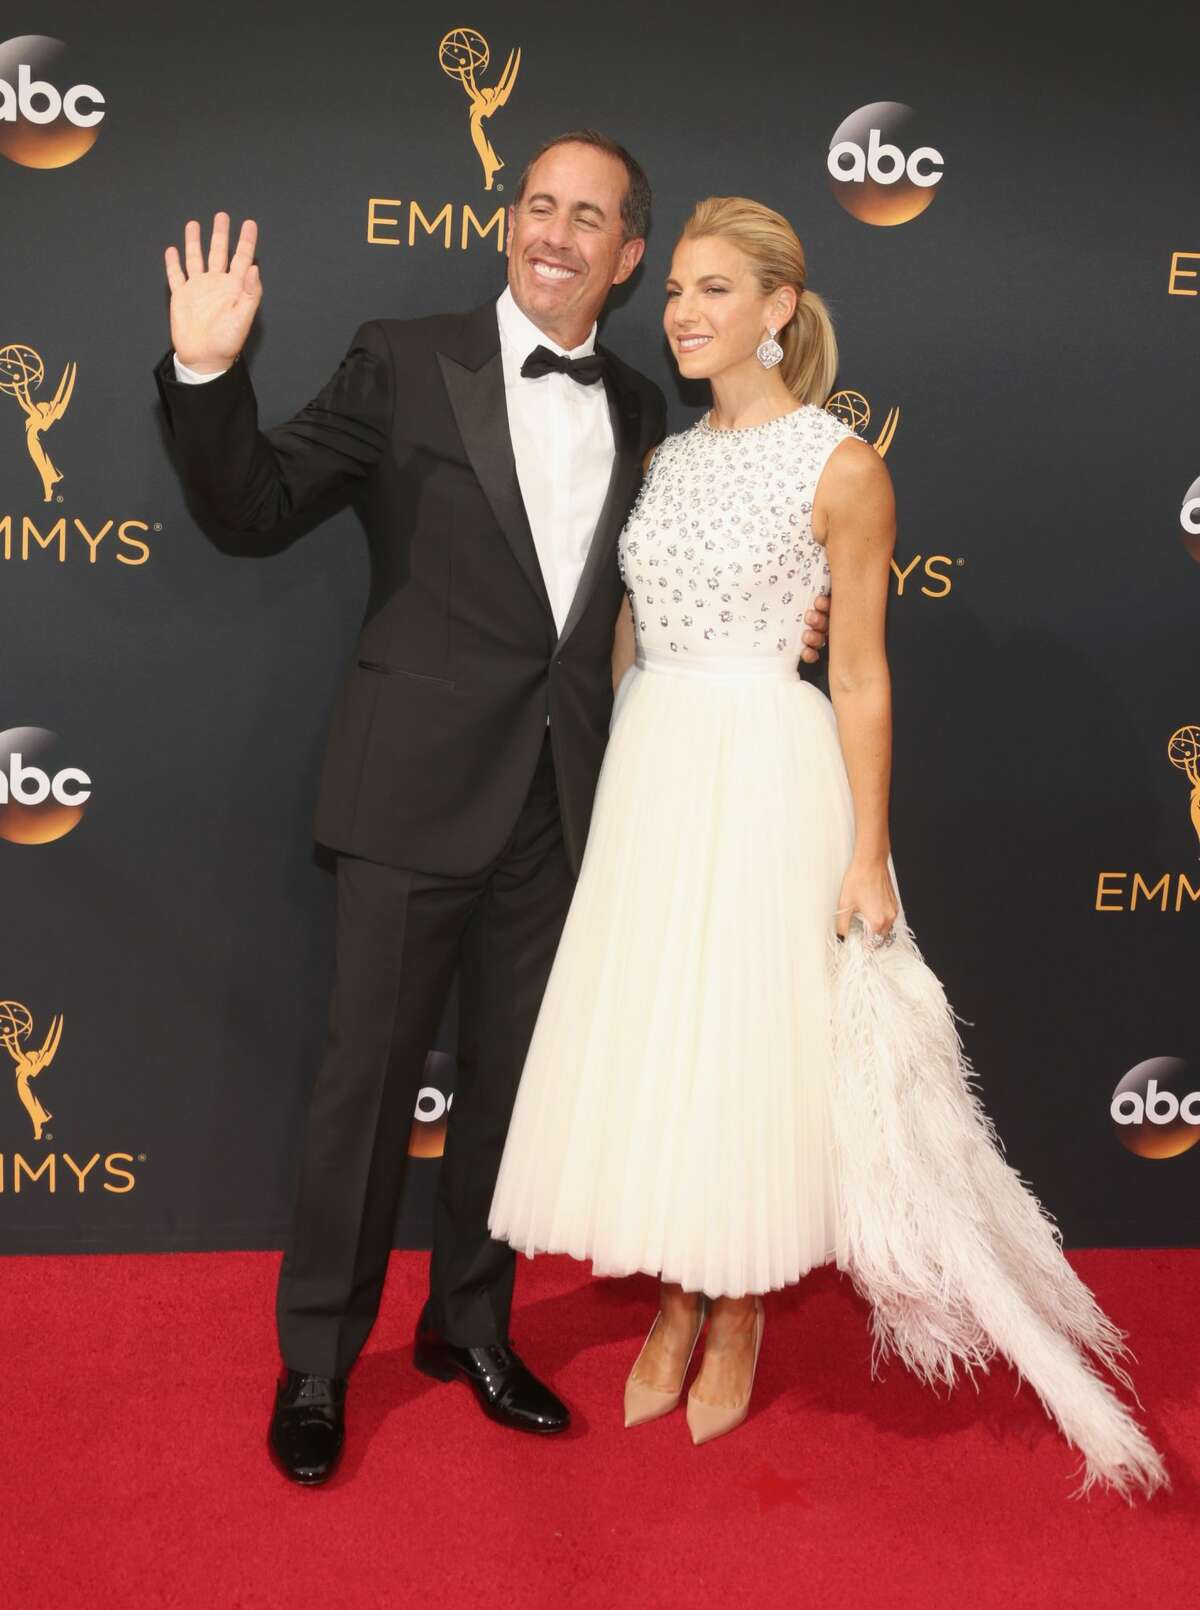 Actor Jerry Seinfeld (L) and author Jessica Seinfeld attend the 68th Annual Primetime Emmy Awards at Microsoft Theater on September 18, 2016 in Los Angeles.